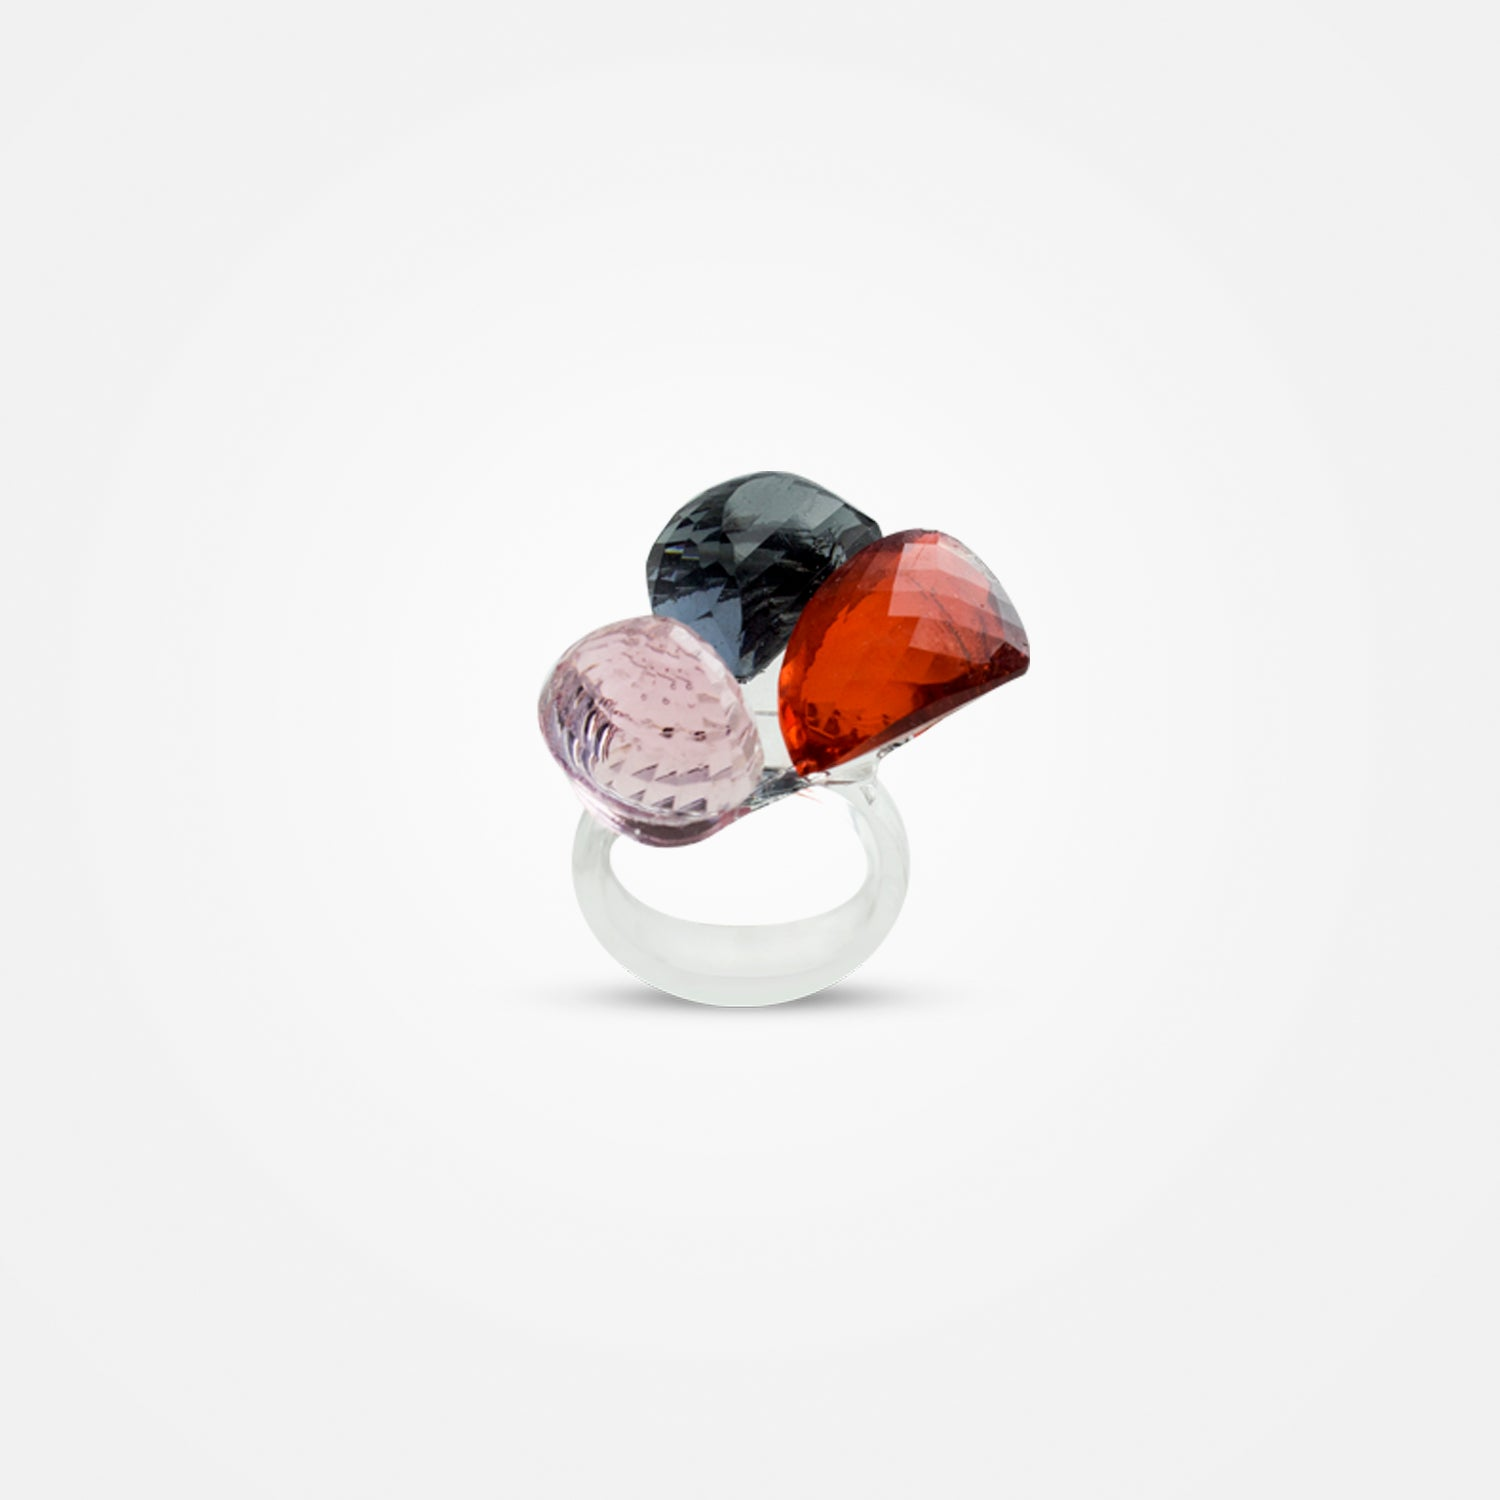 Handmade Crystalline Rose Ring by Corsi